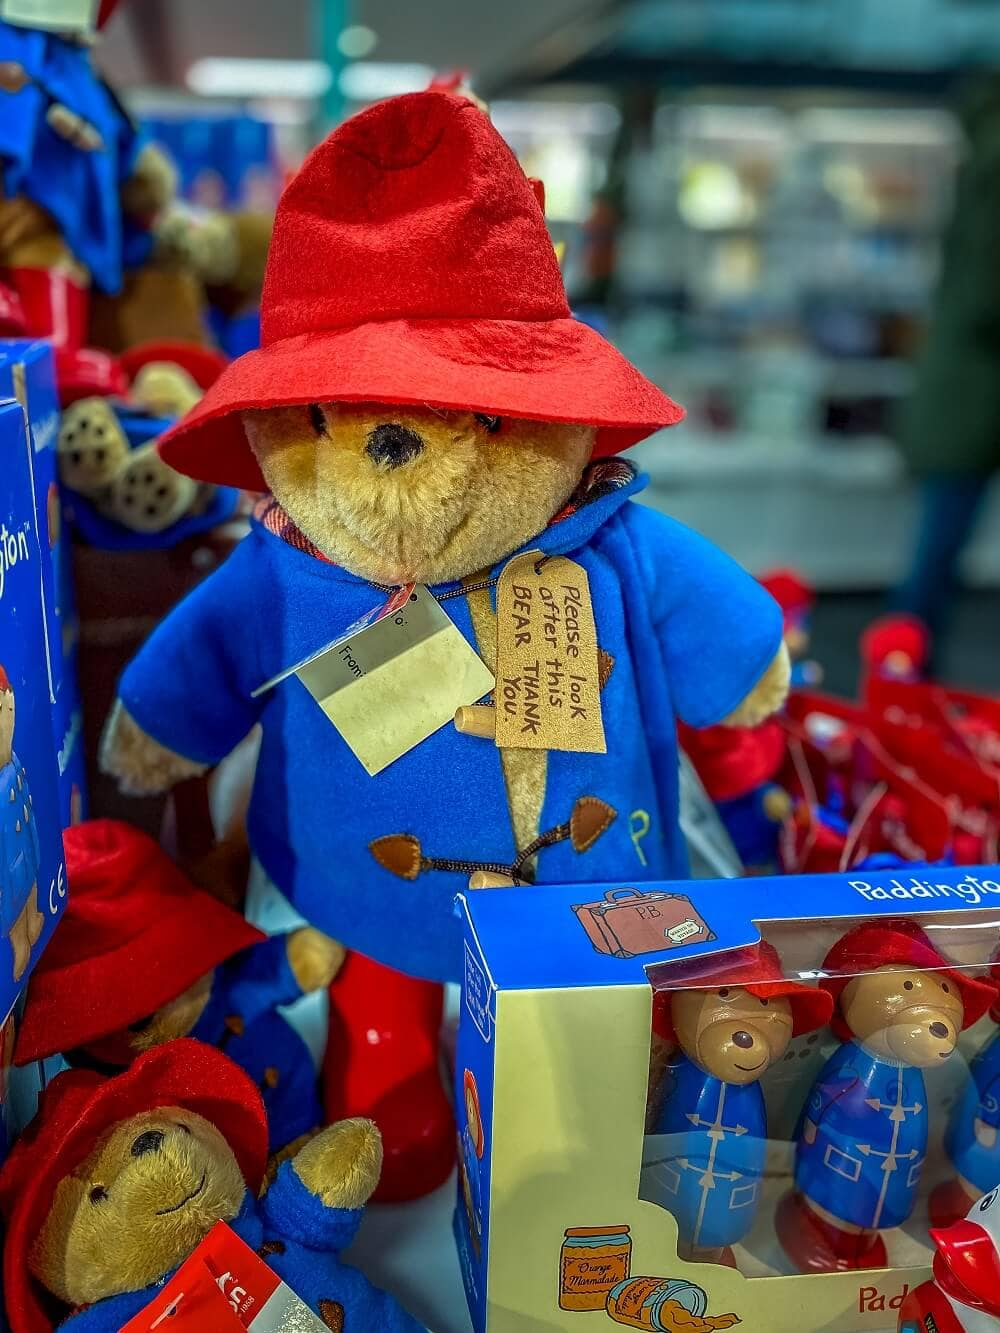 paddington bear at the gift shop at the London Transport Museum